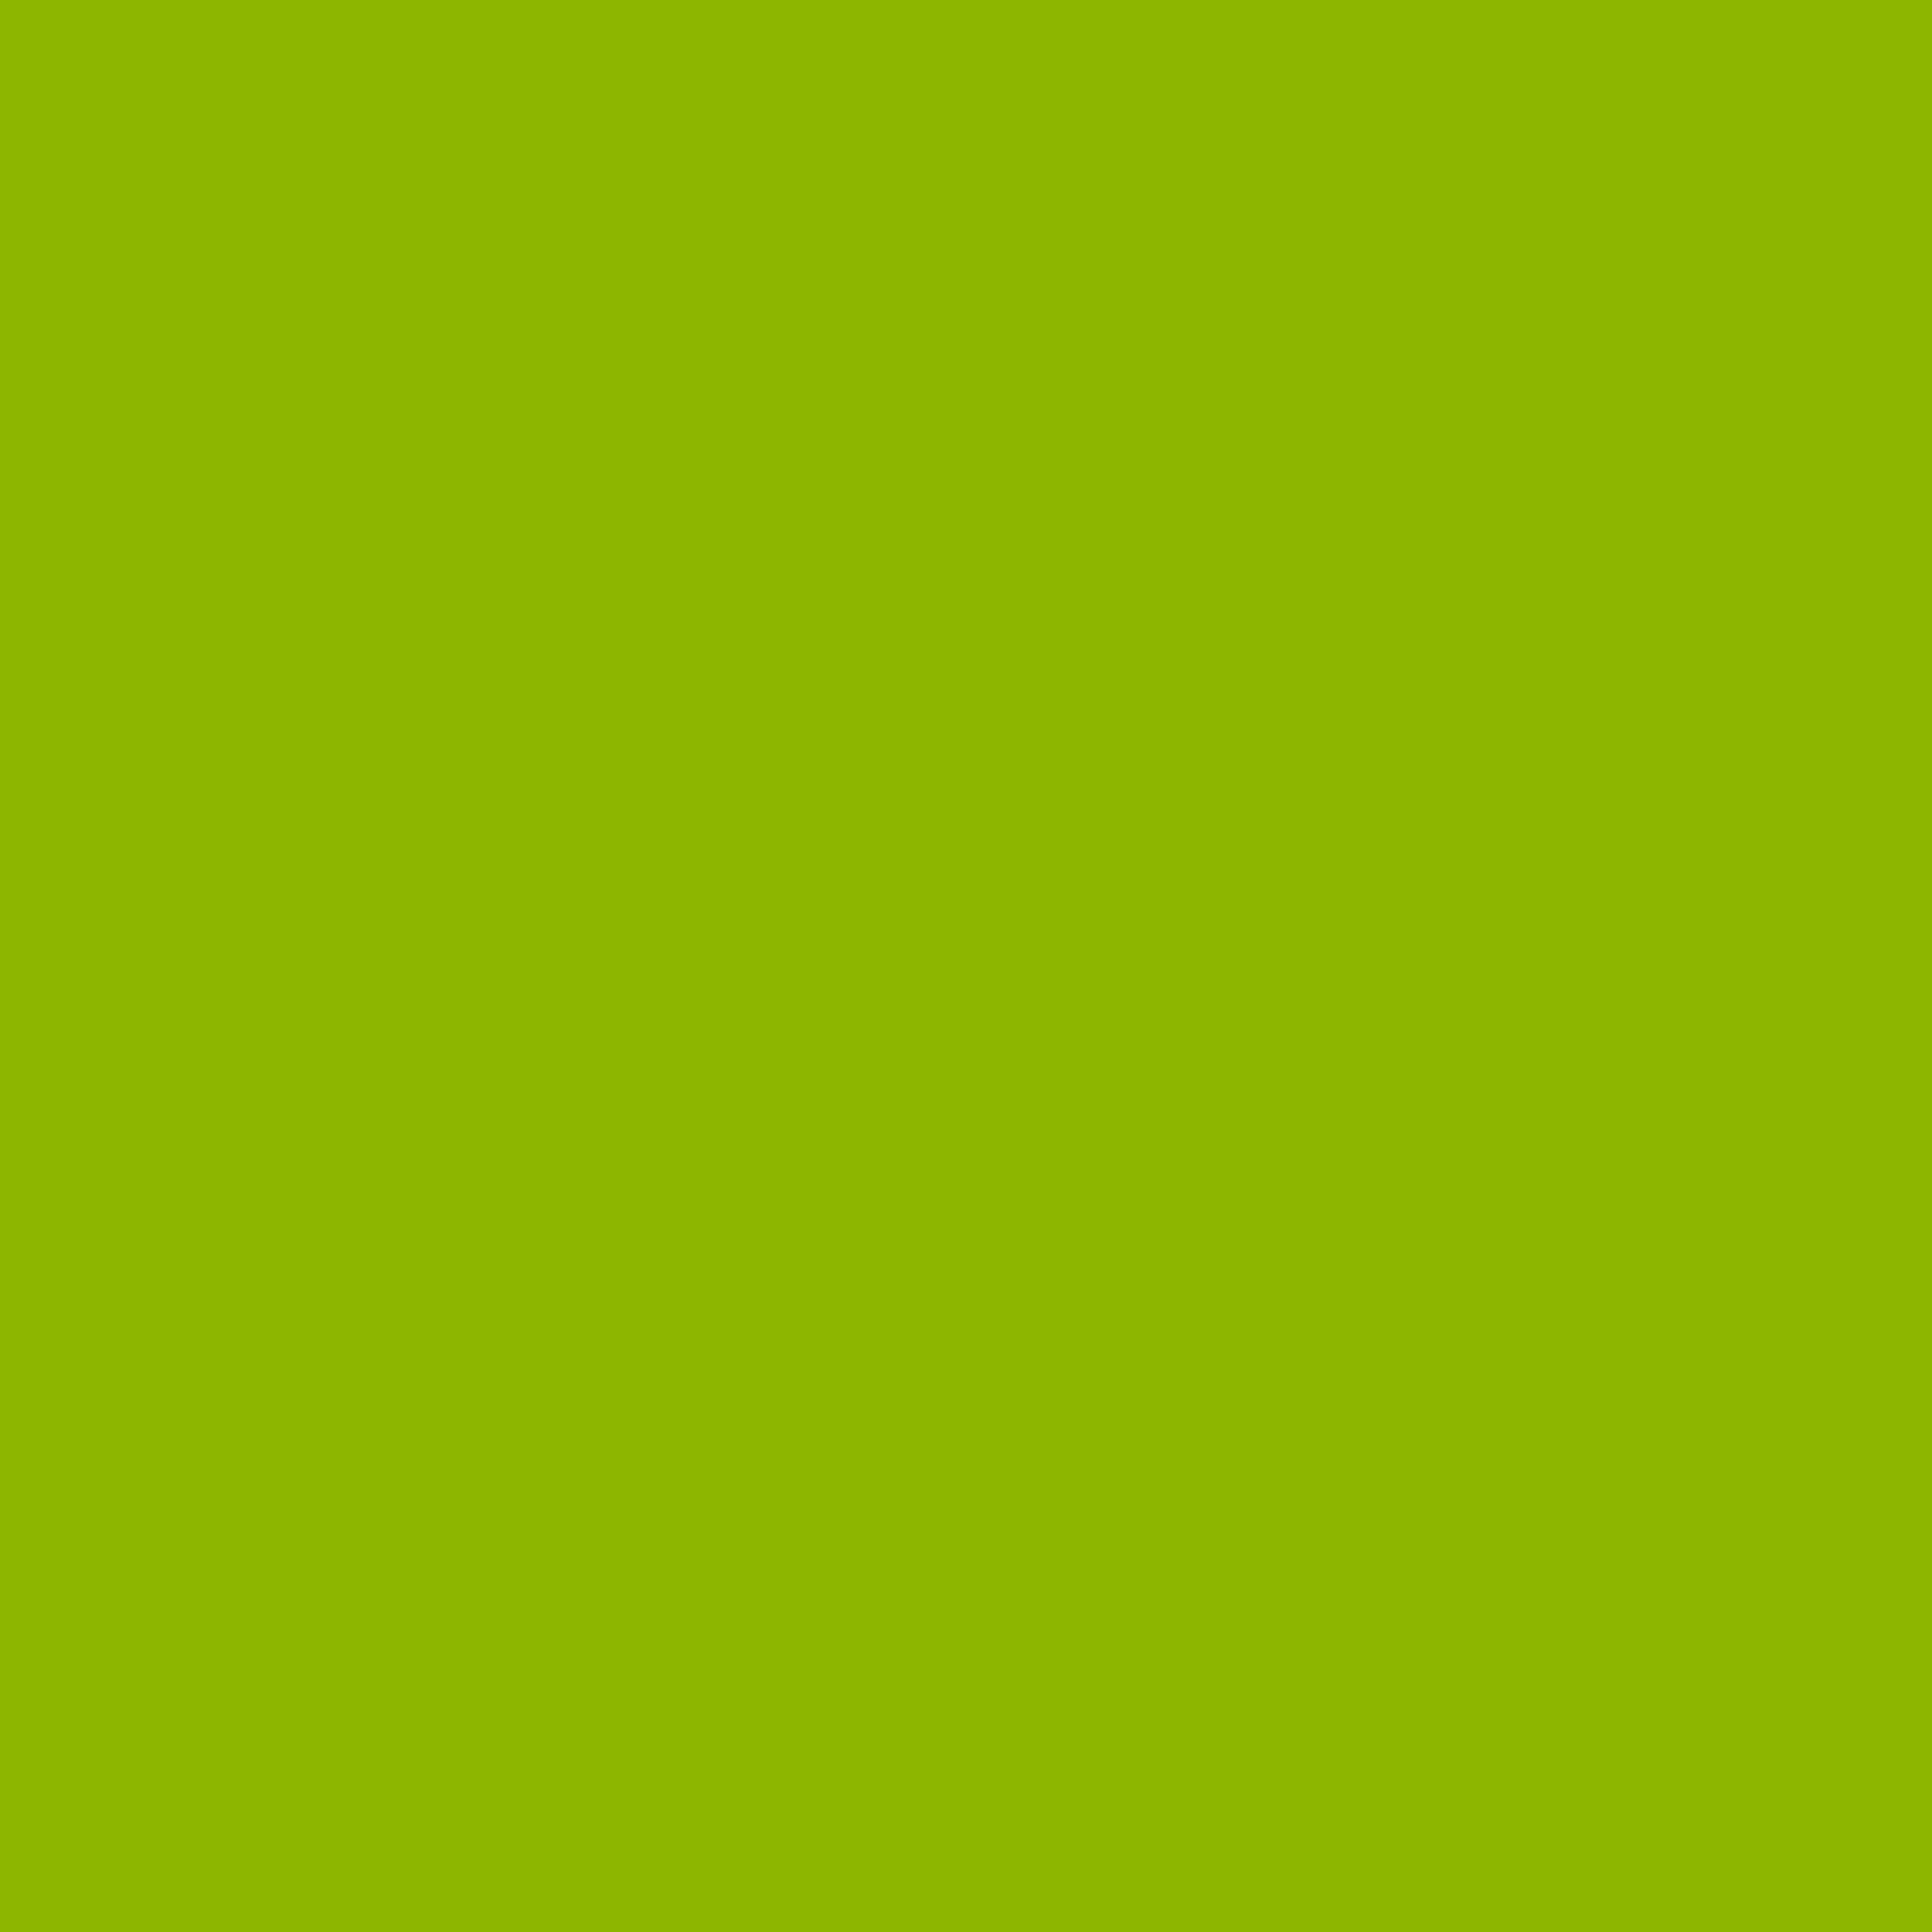 2732x2732 Apple Green Solid Color Background